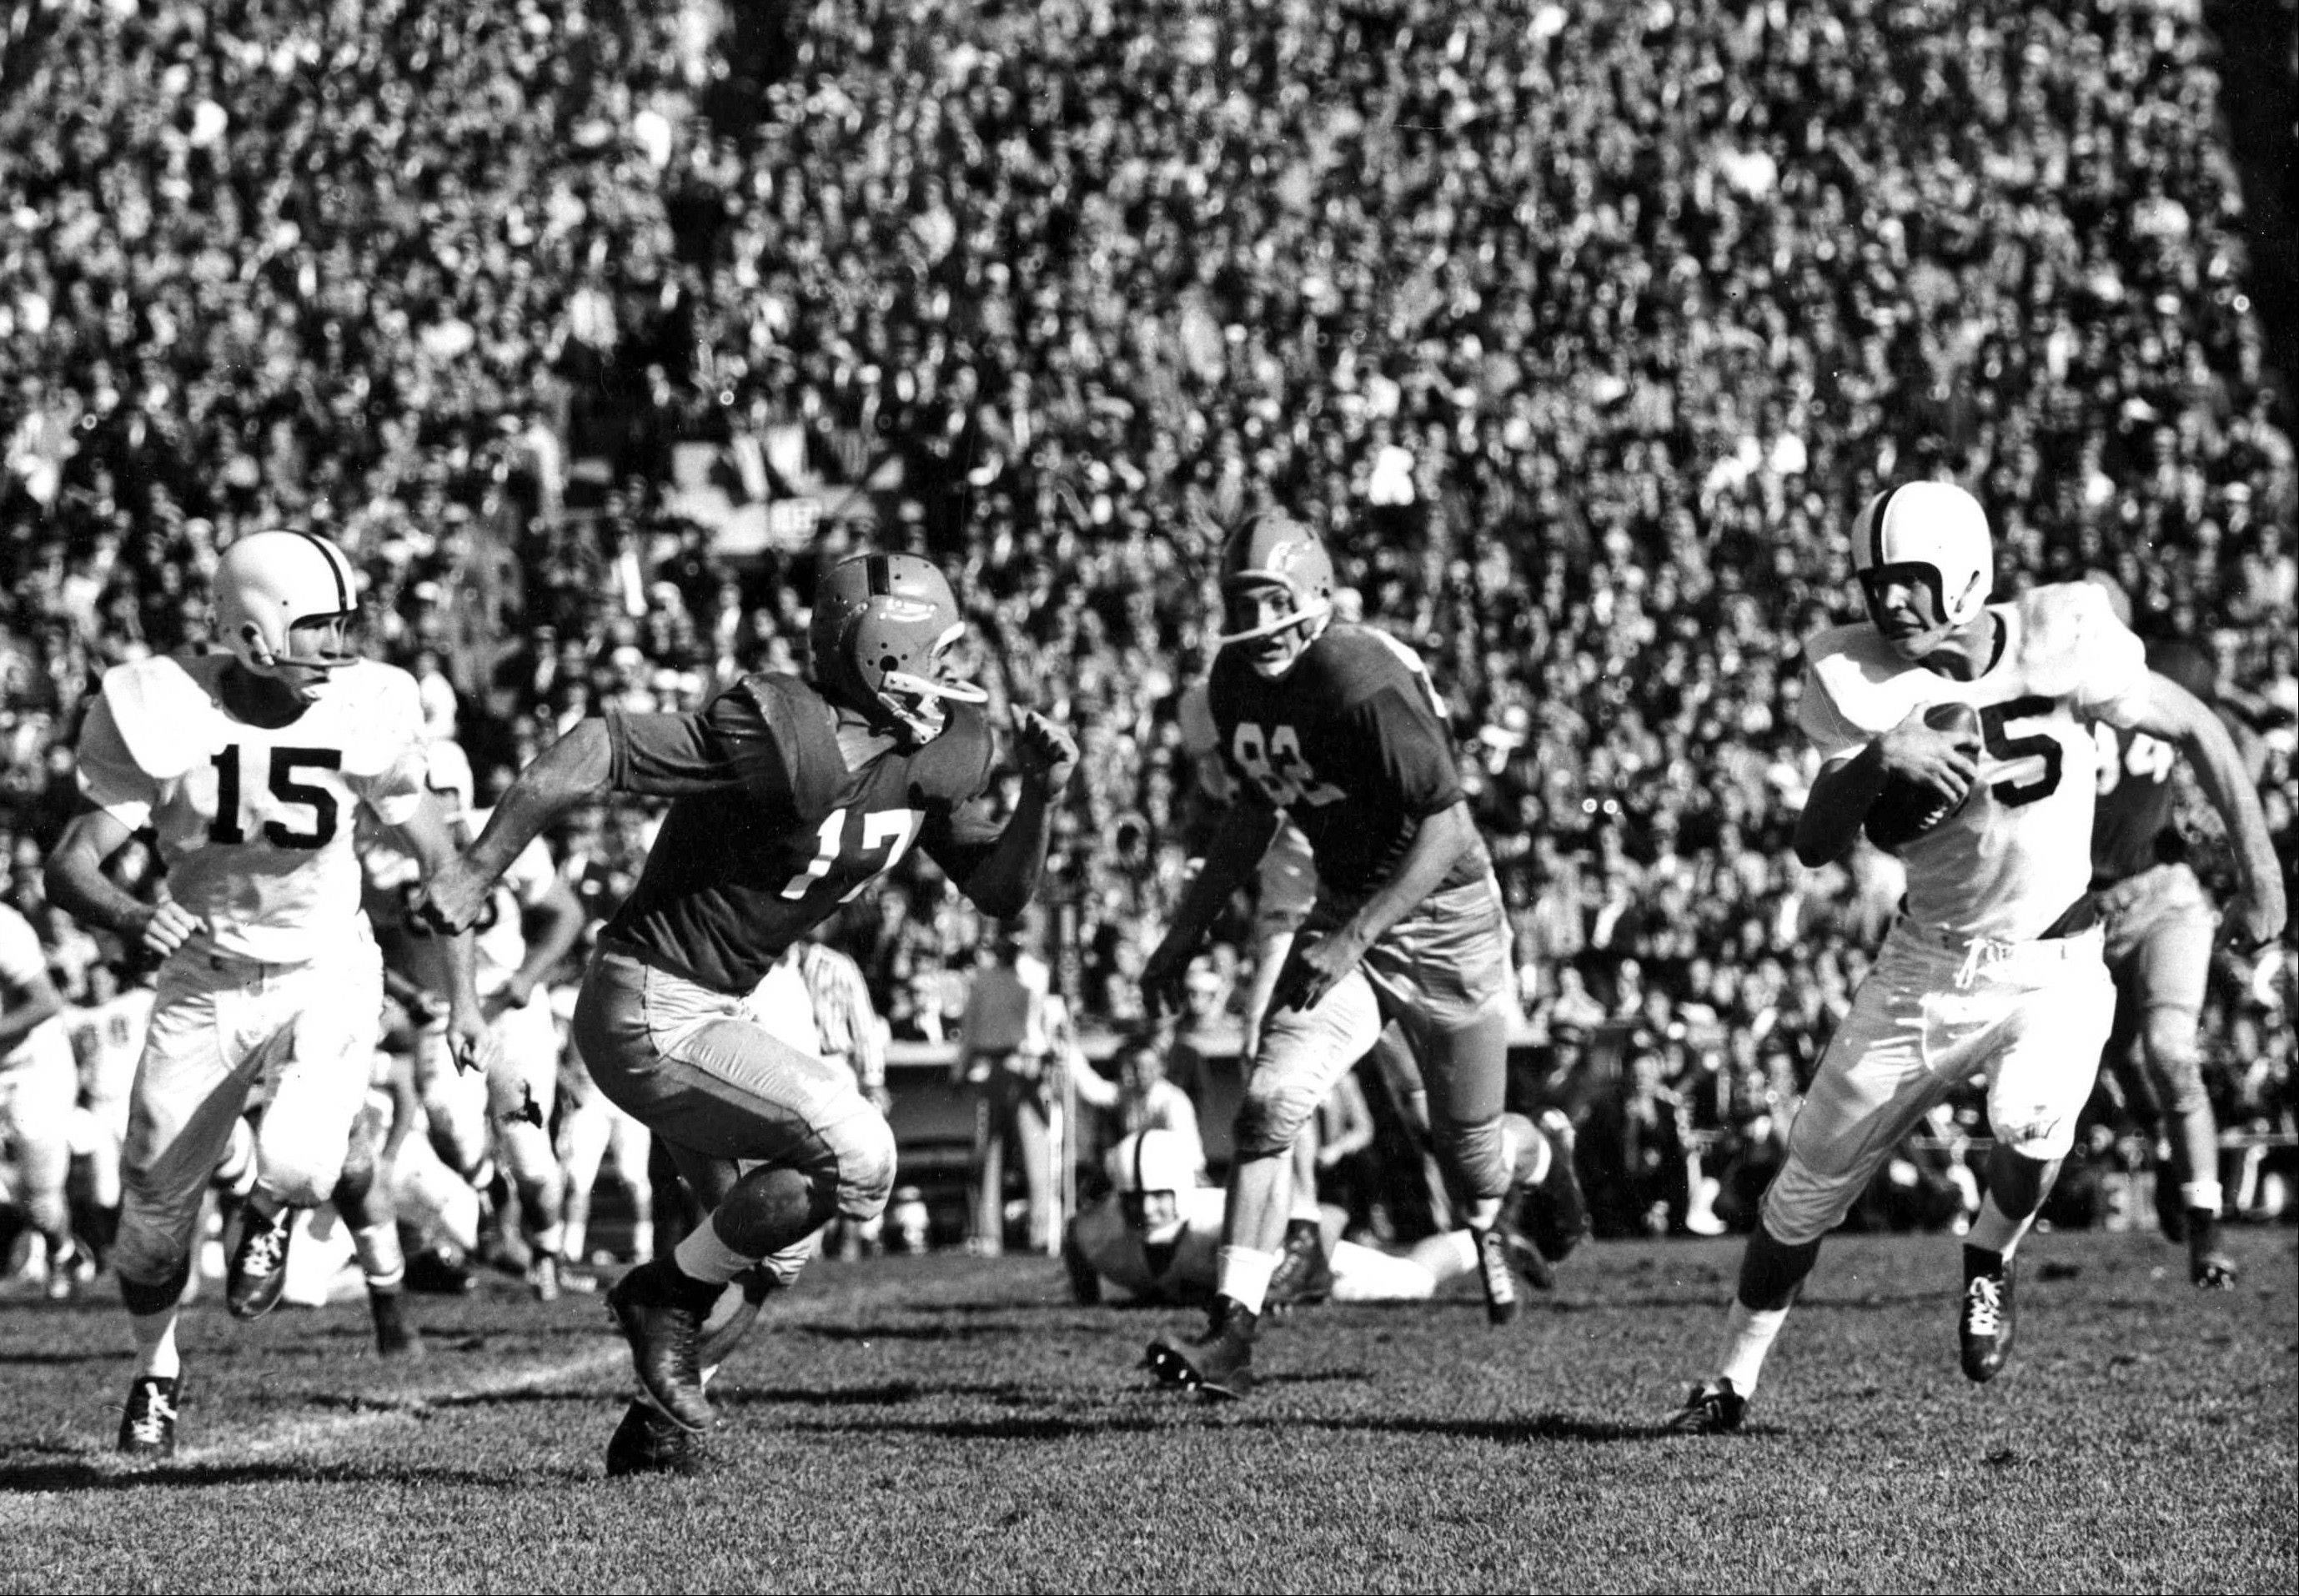 Oklahoma�s Clendon Thomas, right returns an interception as Notre Dame�s Jim Morse chases during a game in South Bend, Ind. Notre Dame has had some great victories in its 125 years of playing college football, yet none was as improbable as the 7-0 victory at second-ranked Oklahoma in 1957. That victory ended the Sooners� NCAA-record winning streak at 47 games and came just a season after the Sooners beat the Irish 40-0 in South Bend, still the most lopsided home loss in Notre Dame history.